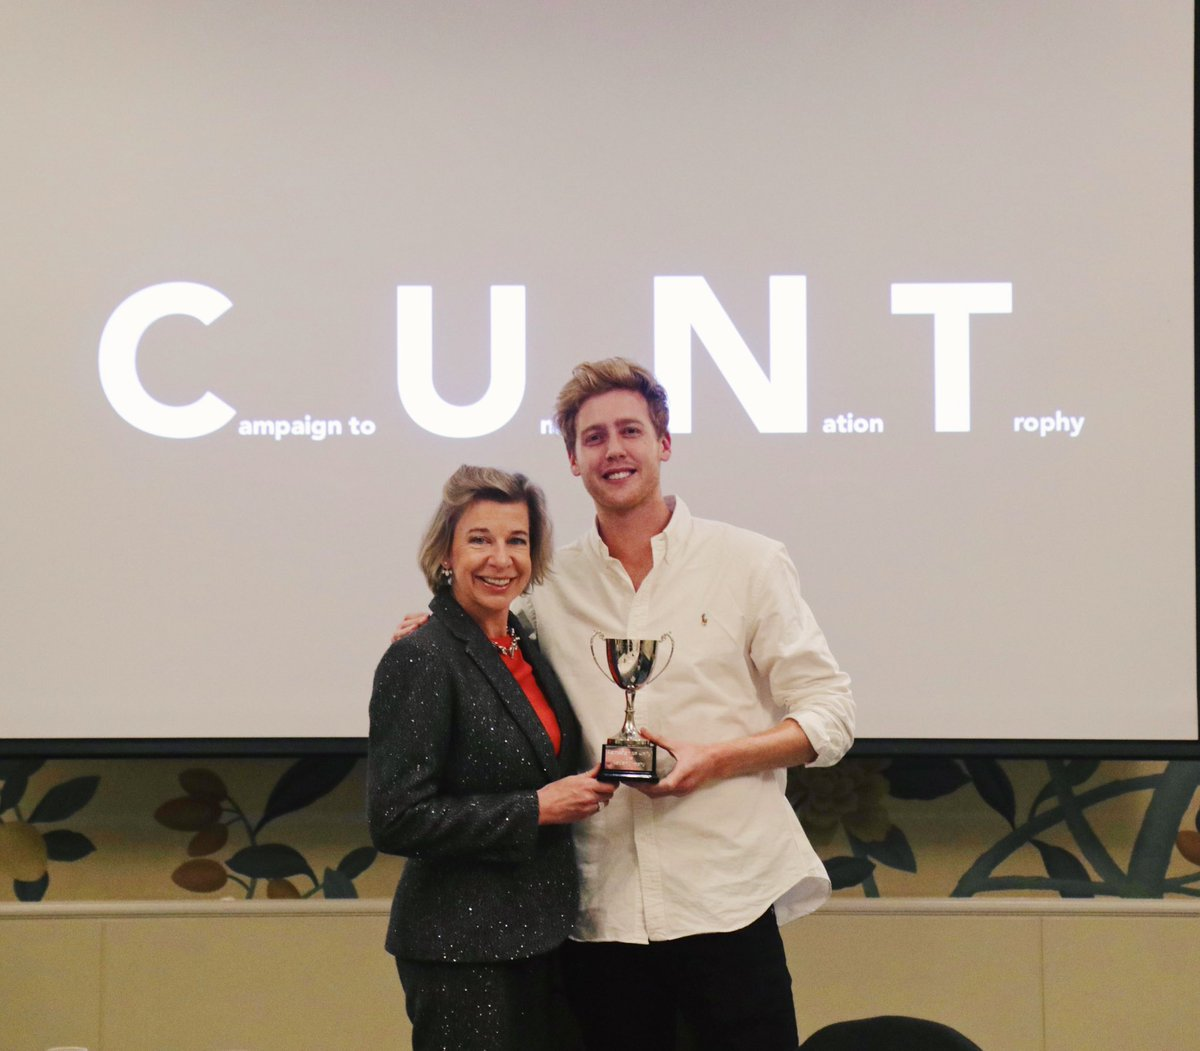 Now that Katie Hopkins can't read Twitter, I can tell you that on Monday I made her fly to Prague to pick up a completely fake award. Video up shortly. https://t.co/8EeQsQX6U3